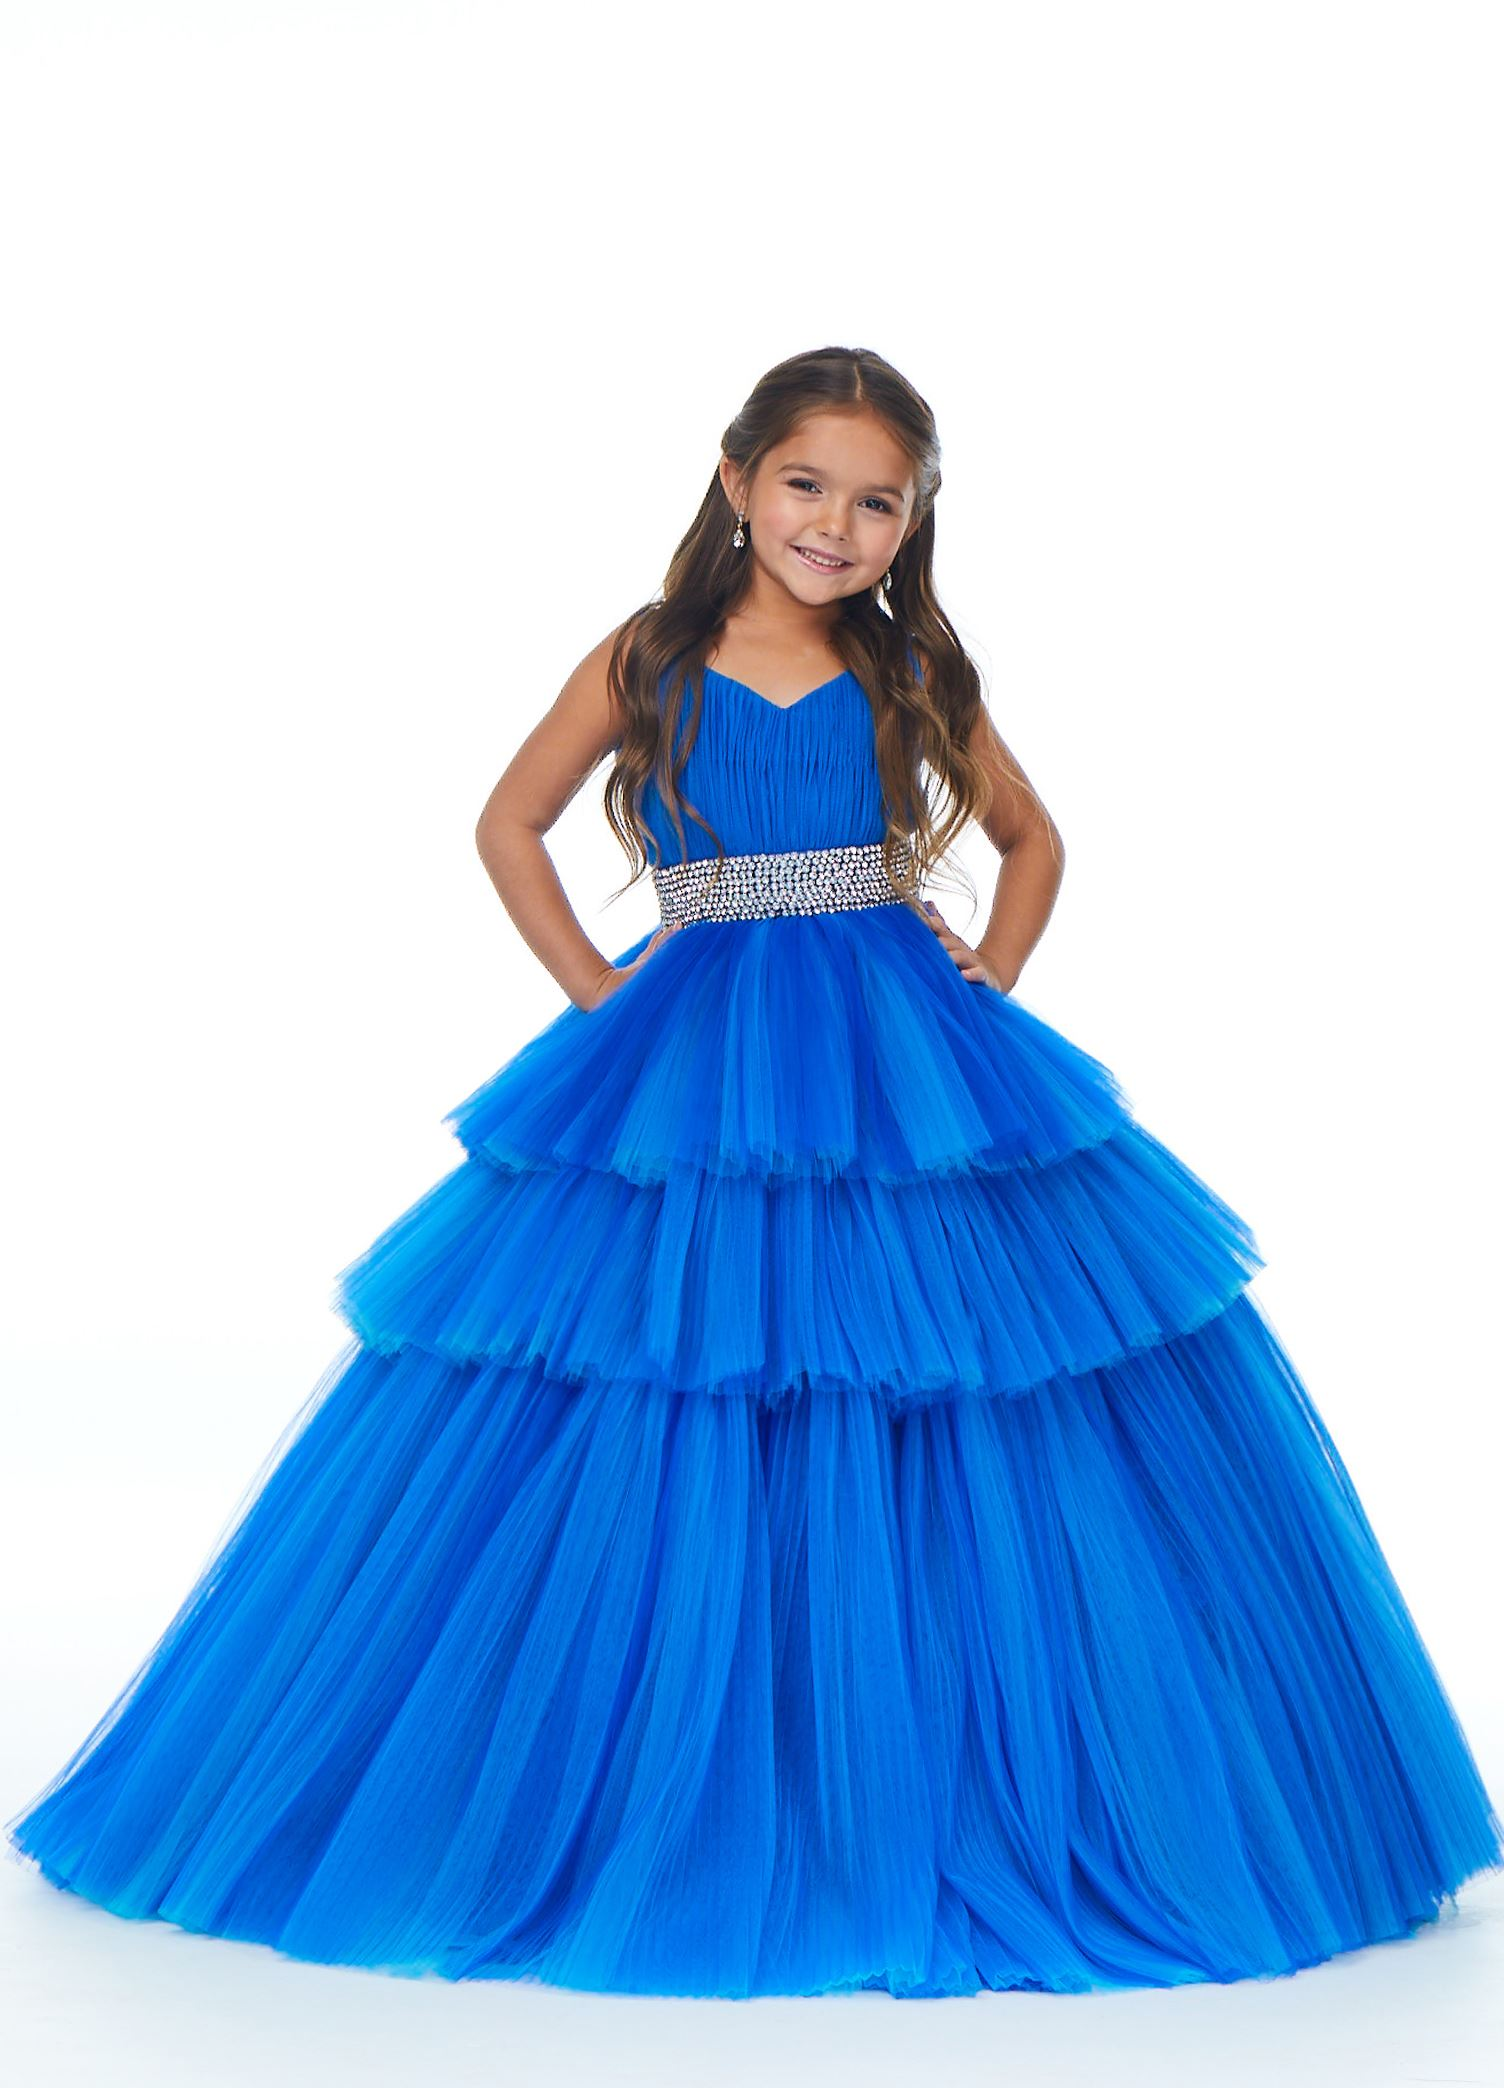 8034 Kids Ball Gown with Pleated Tulle Tiers